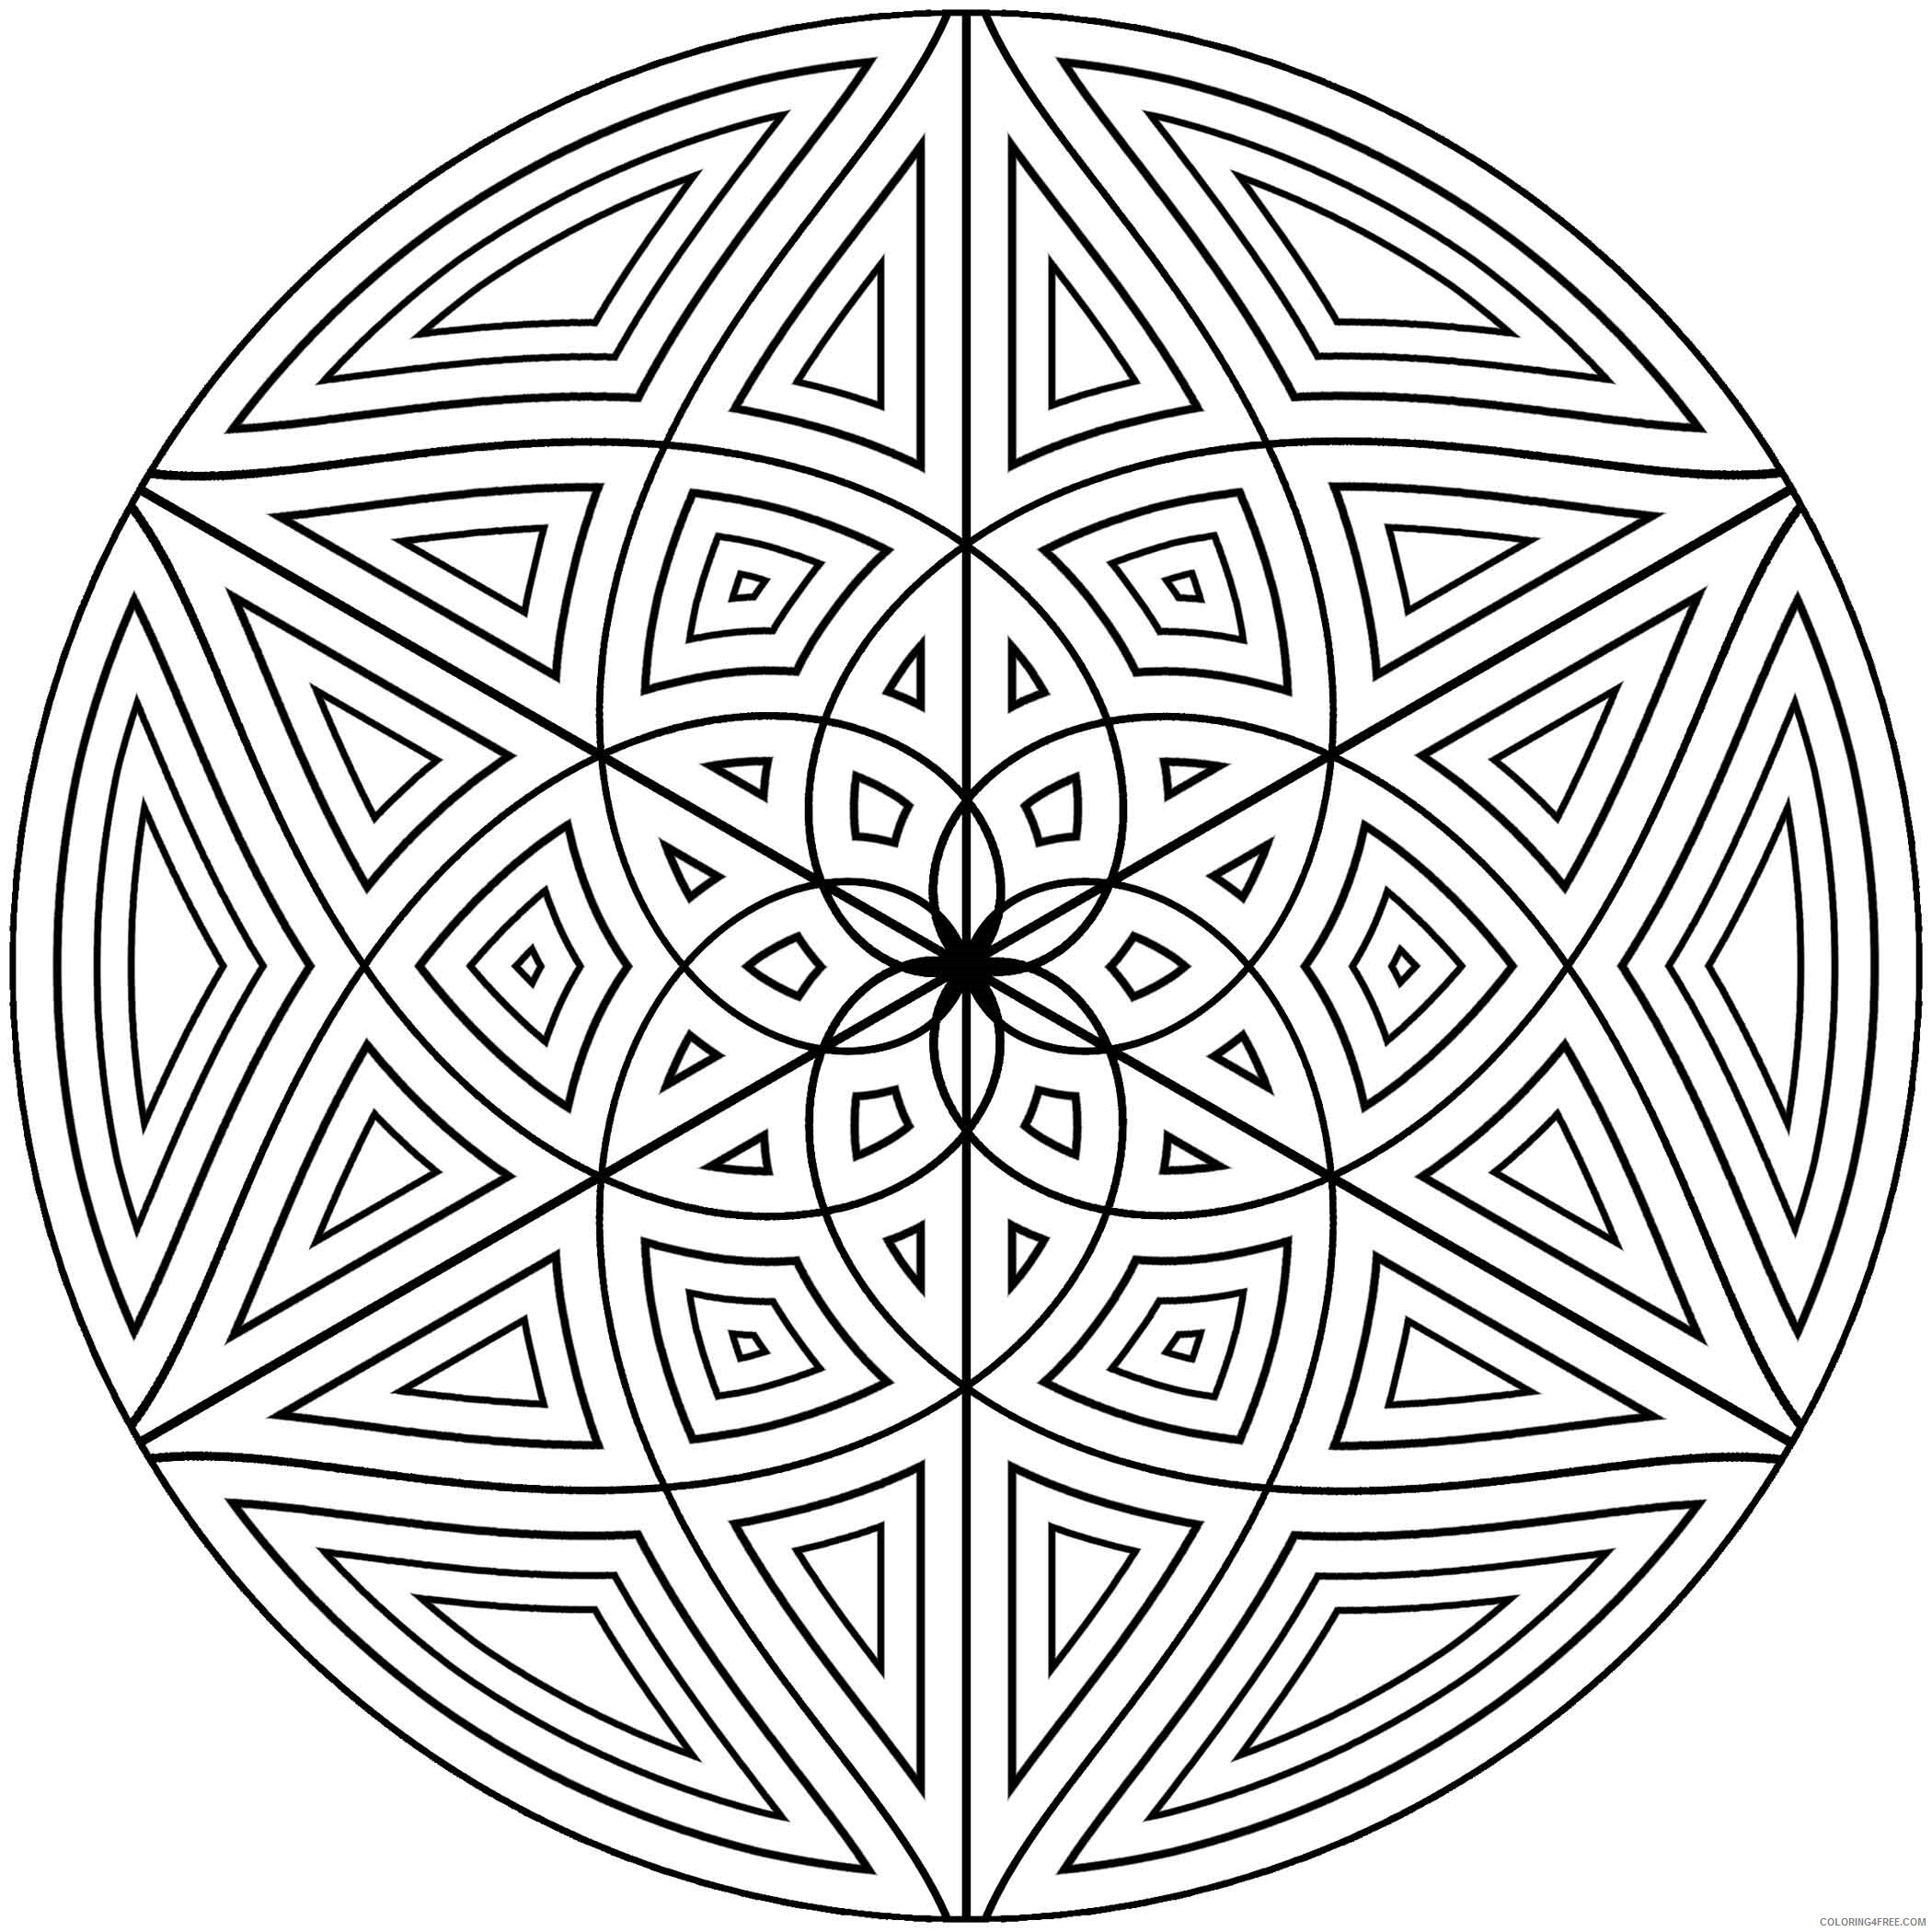 Geometric Design Coloring Pages Adult geometric designs to Printable 2020 453 Coloring4free